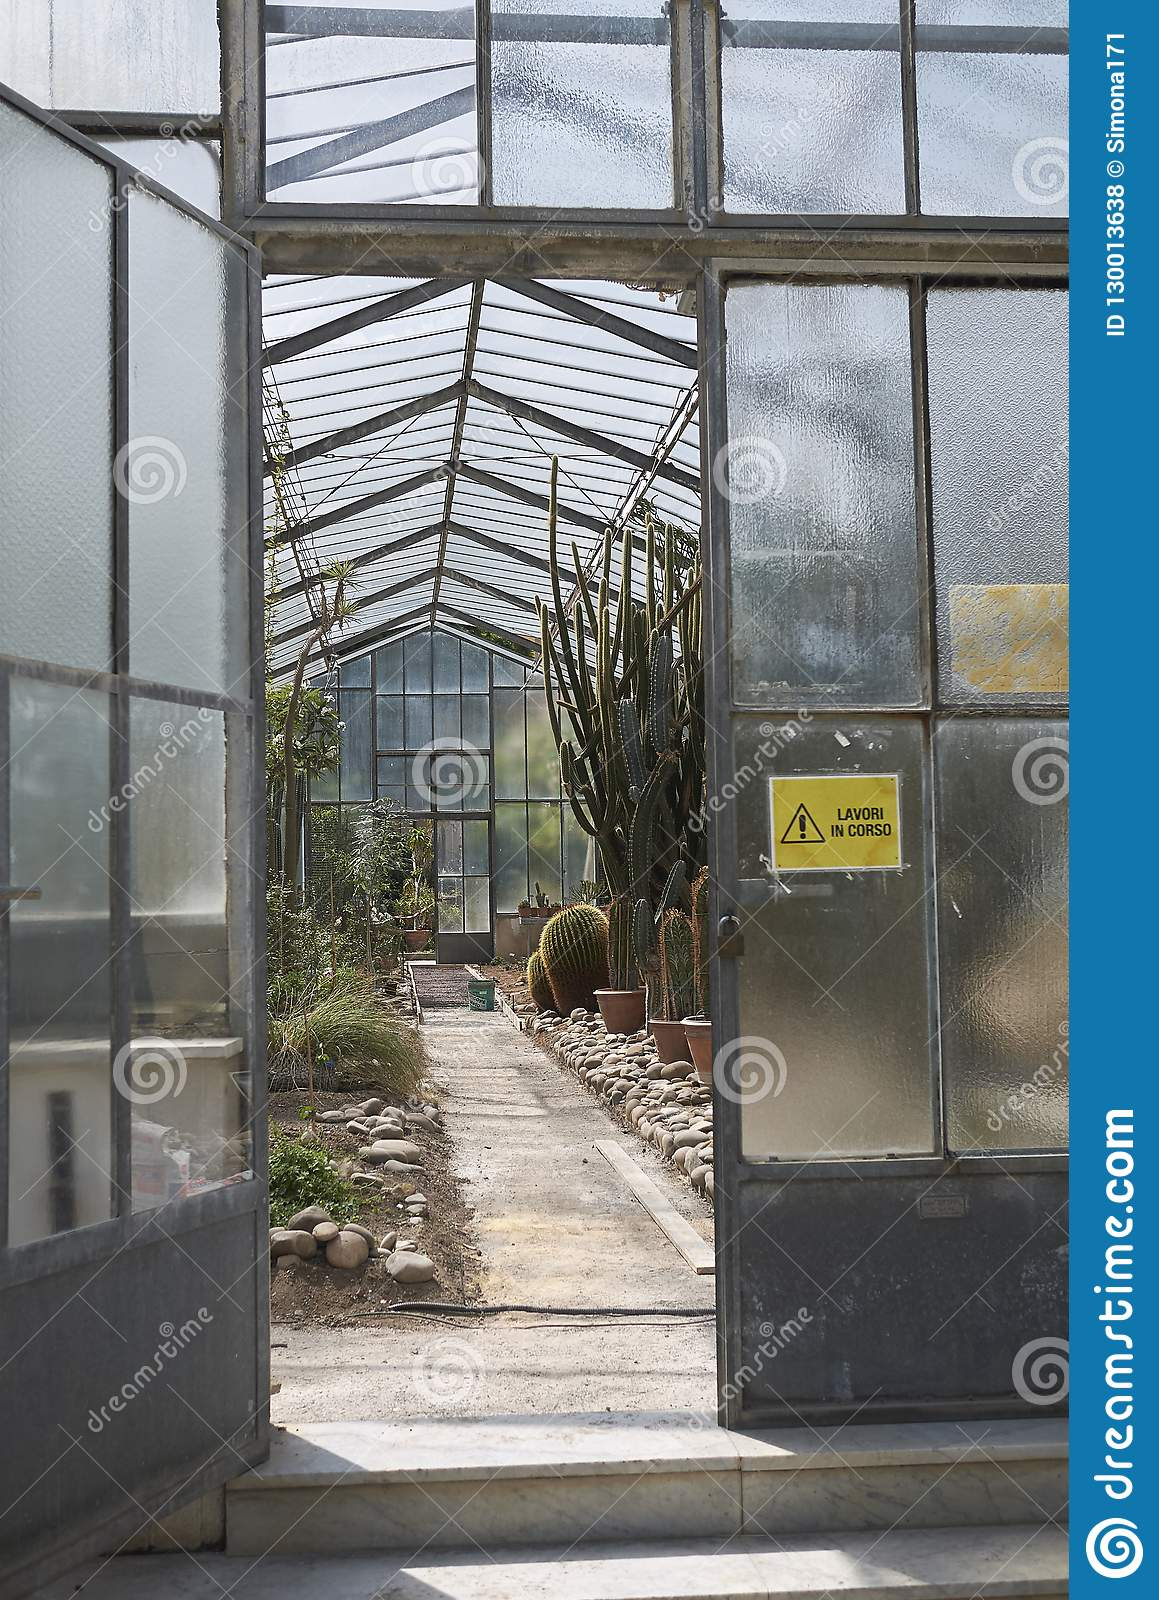 Succulents glass house editorial stock photo. Image of garden ...